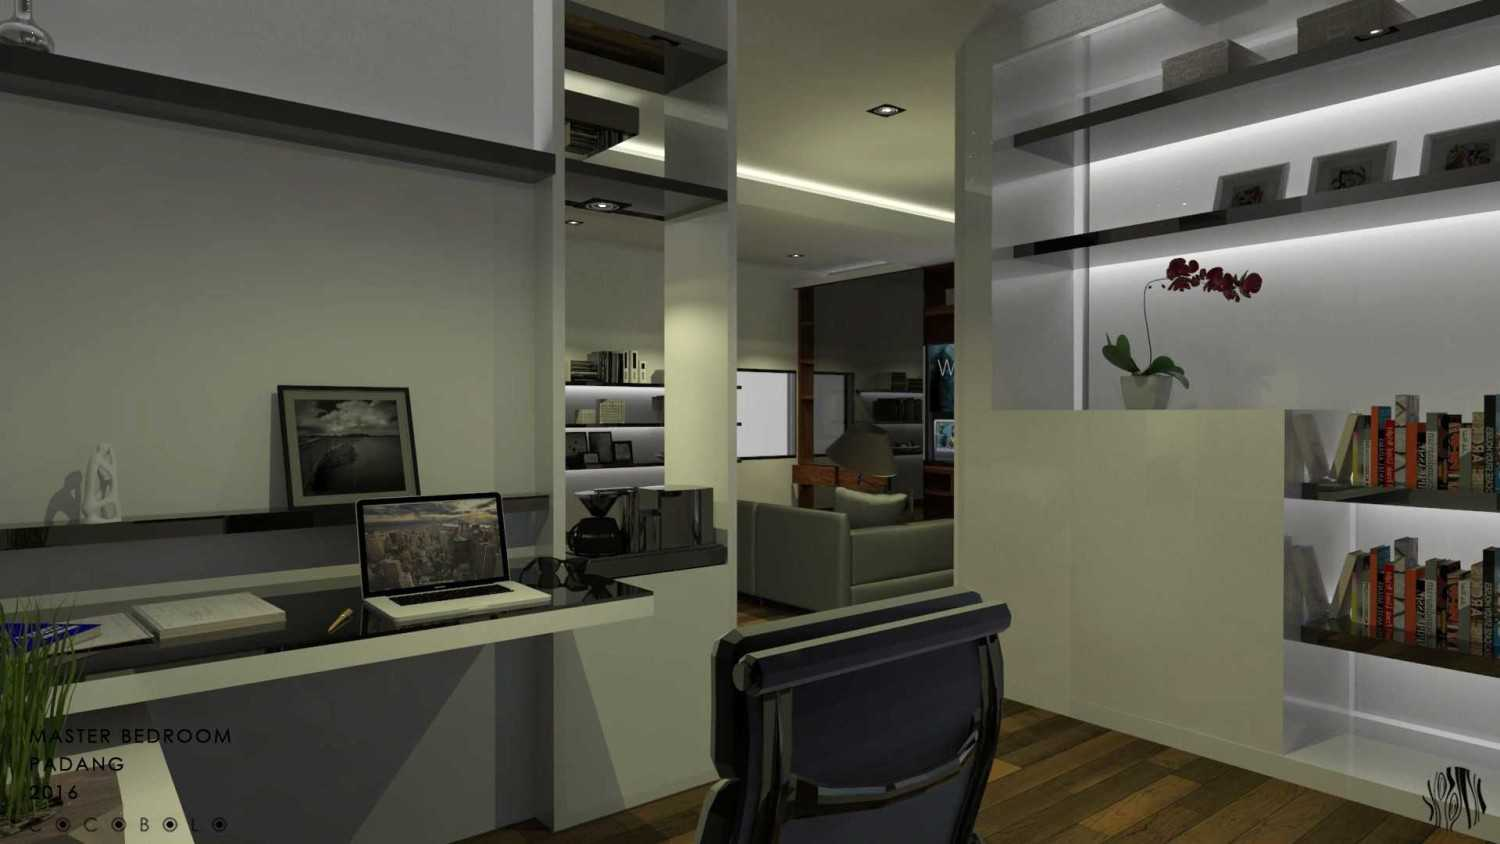 Cocobolo Studio D House Padang, Indonesia Padang, Indonesia Work Area Minimalis,modern 18261